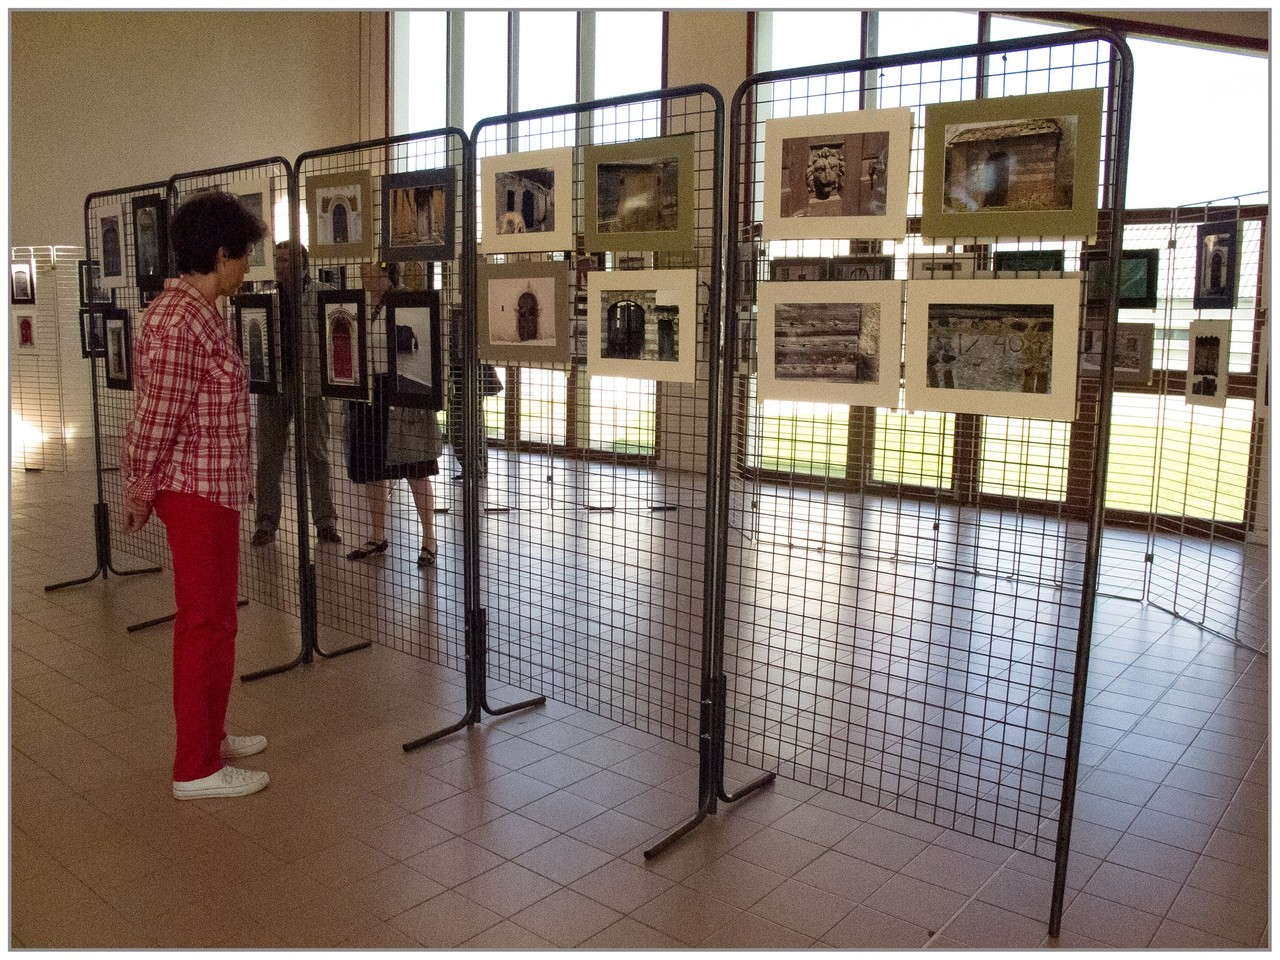 Exposition Milly sur Thérain